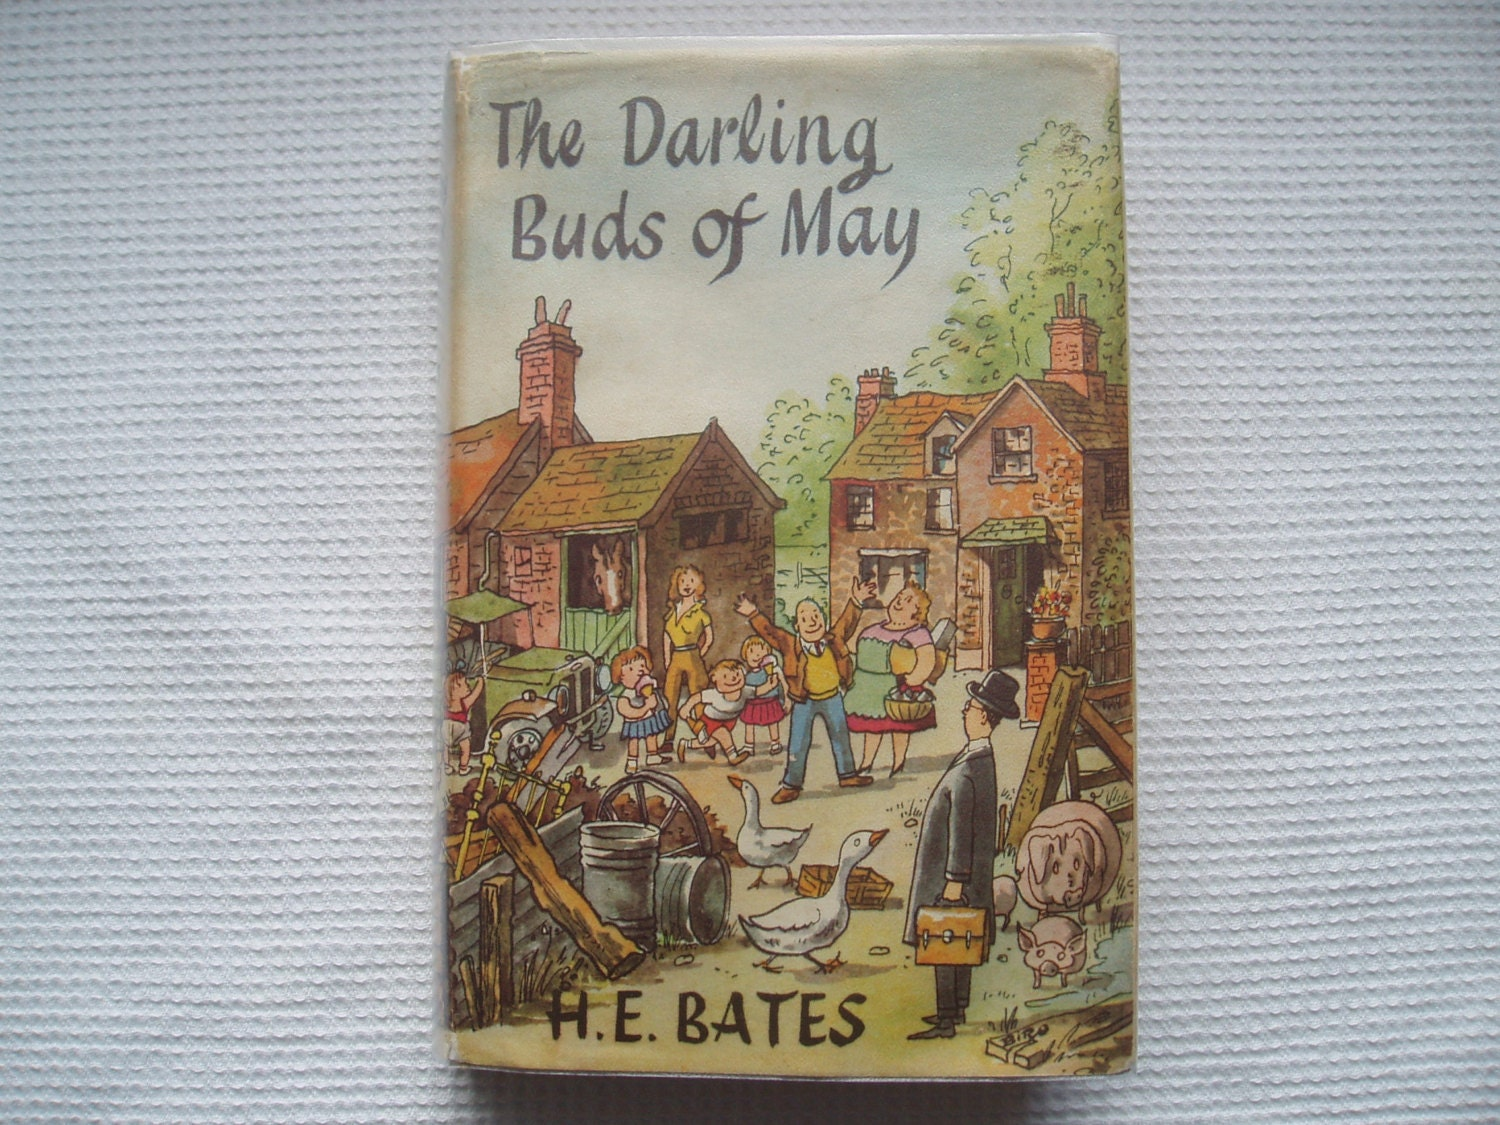 c1958 the darling buds of may by h e bates cover. Black Bedroom Furniture Sets. Home Design Ideas